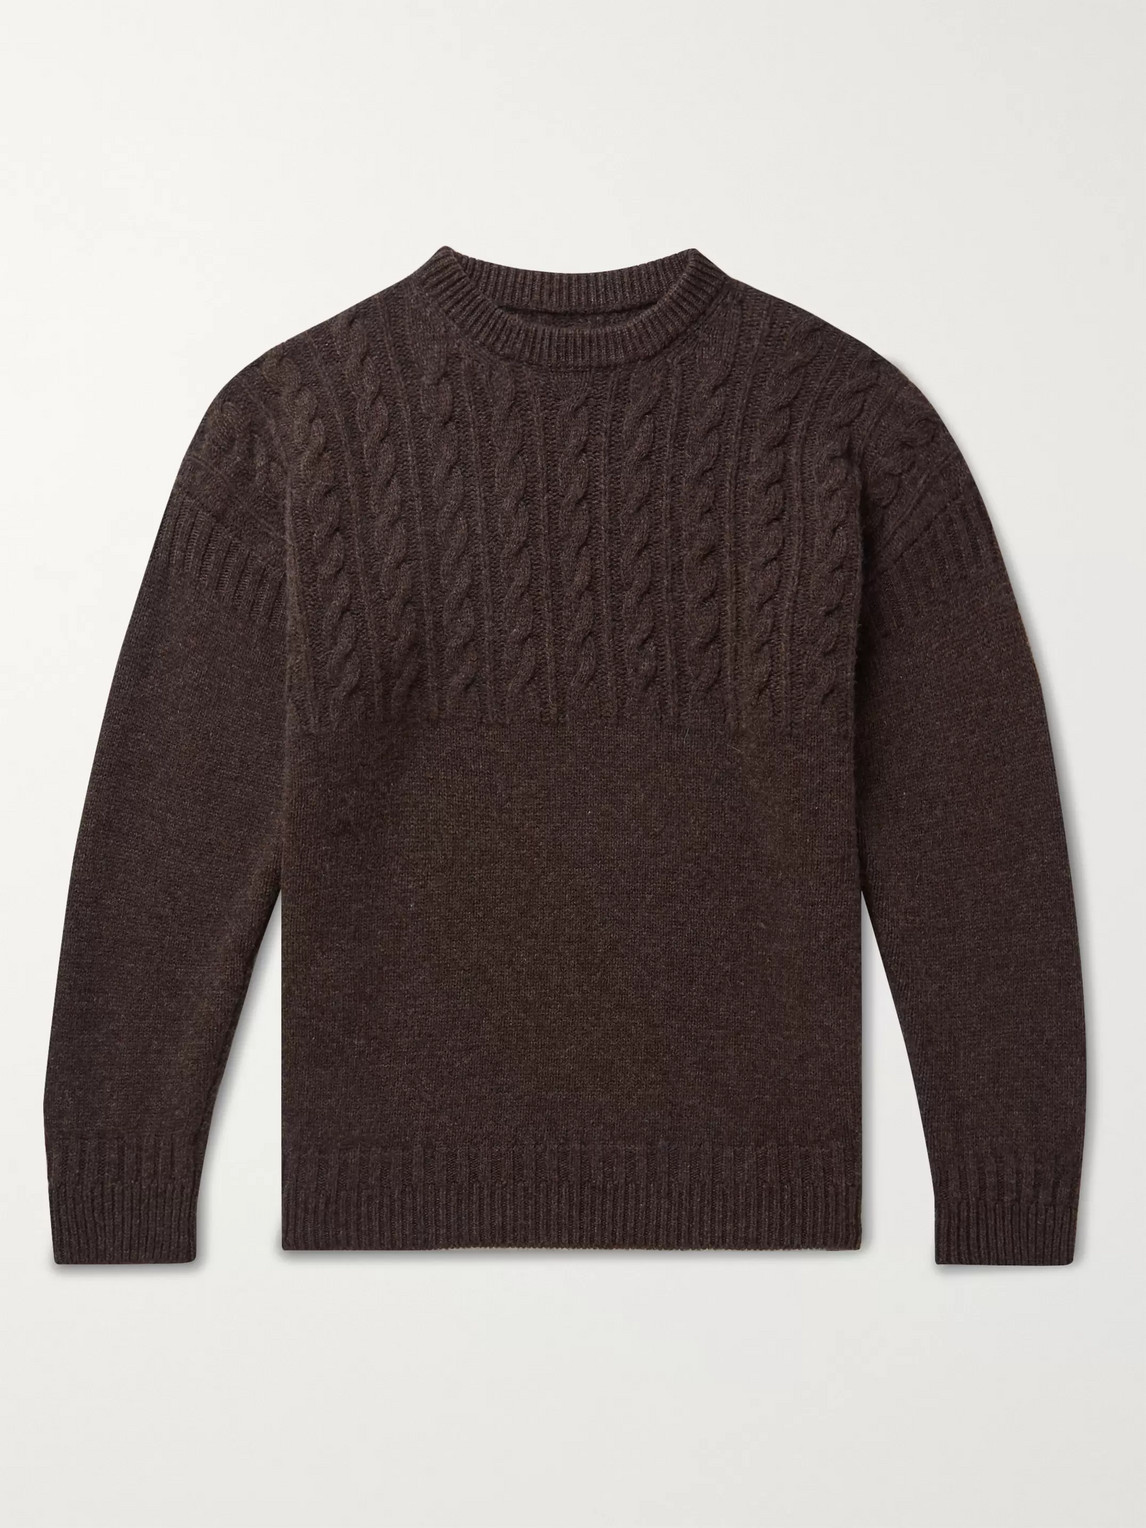 Kingsman Cable-knit Wool And Cashmere-blend Sweater In Brown